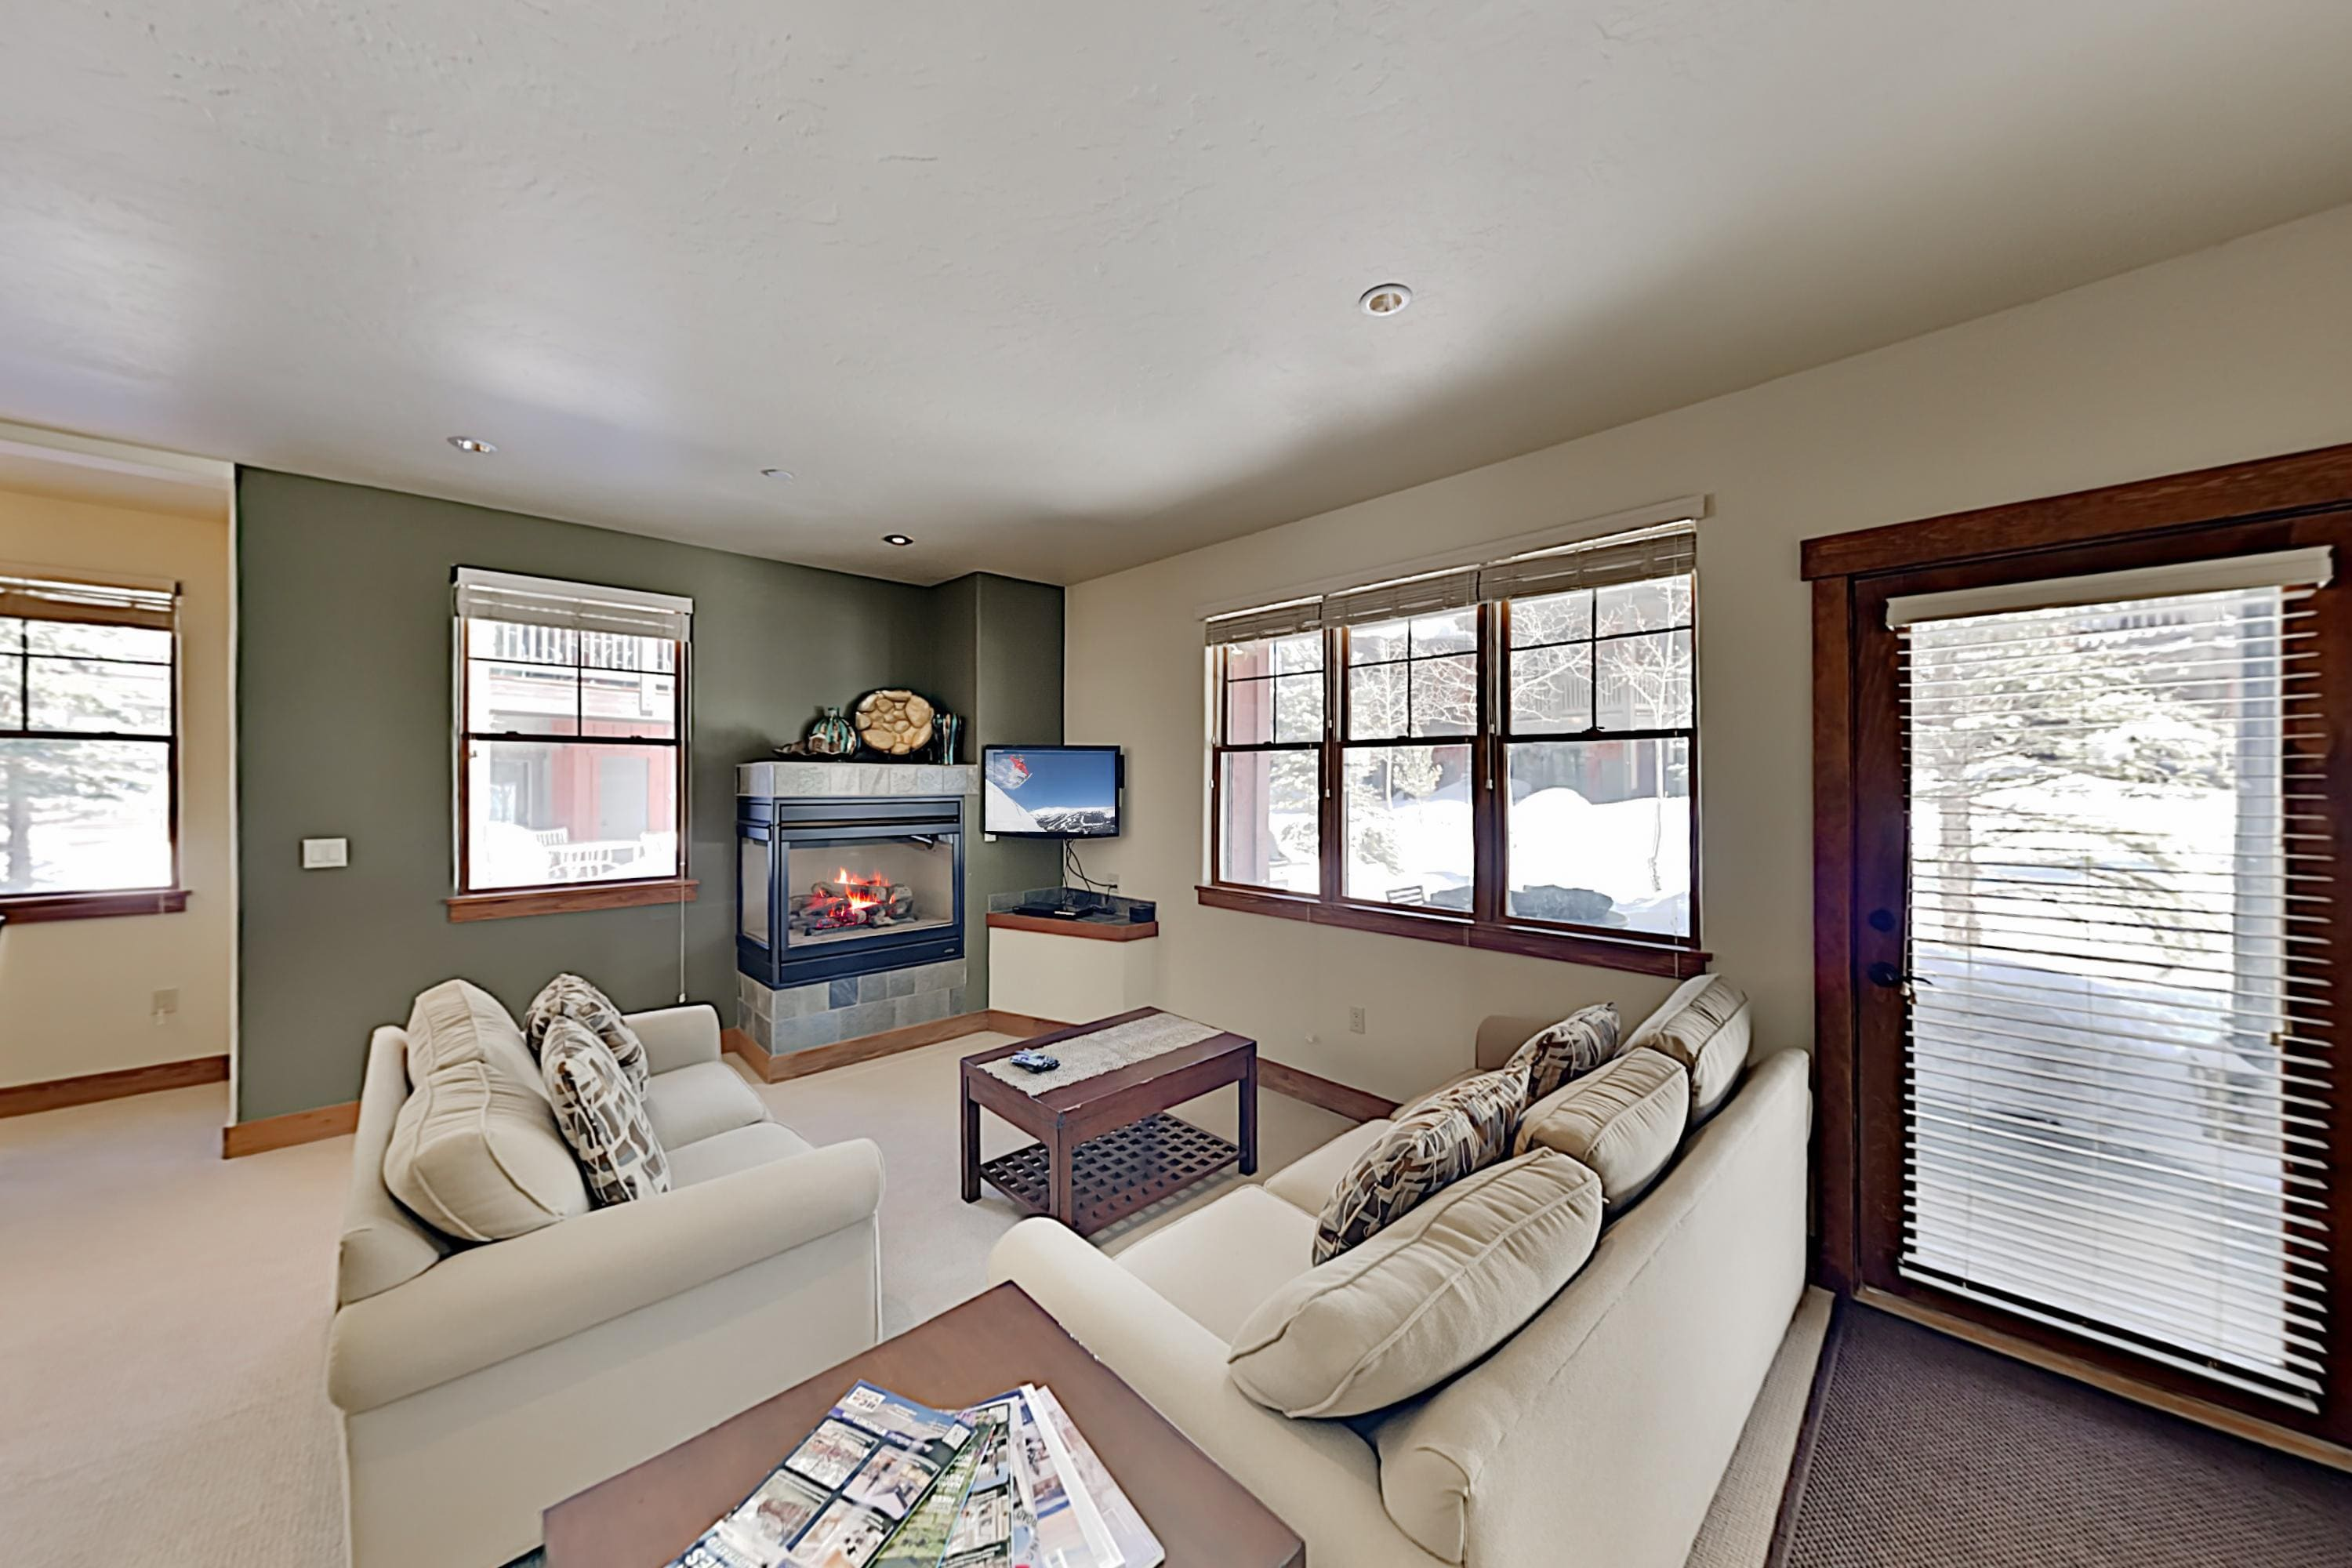 Property Image 1 - Lovely Condo with Fireplace & Shared Hot Tub; Walk to Slopes